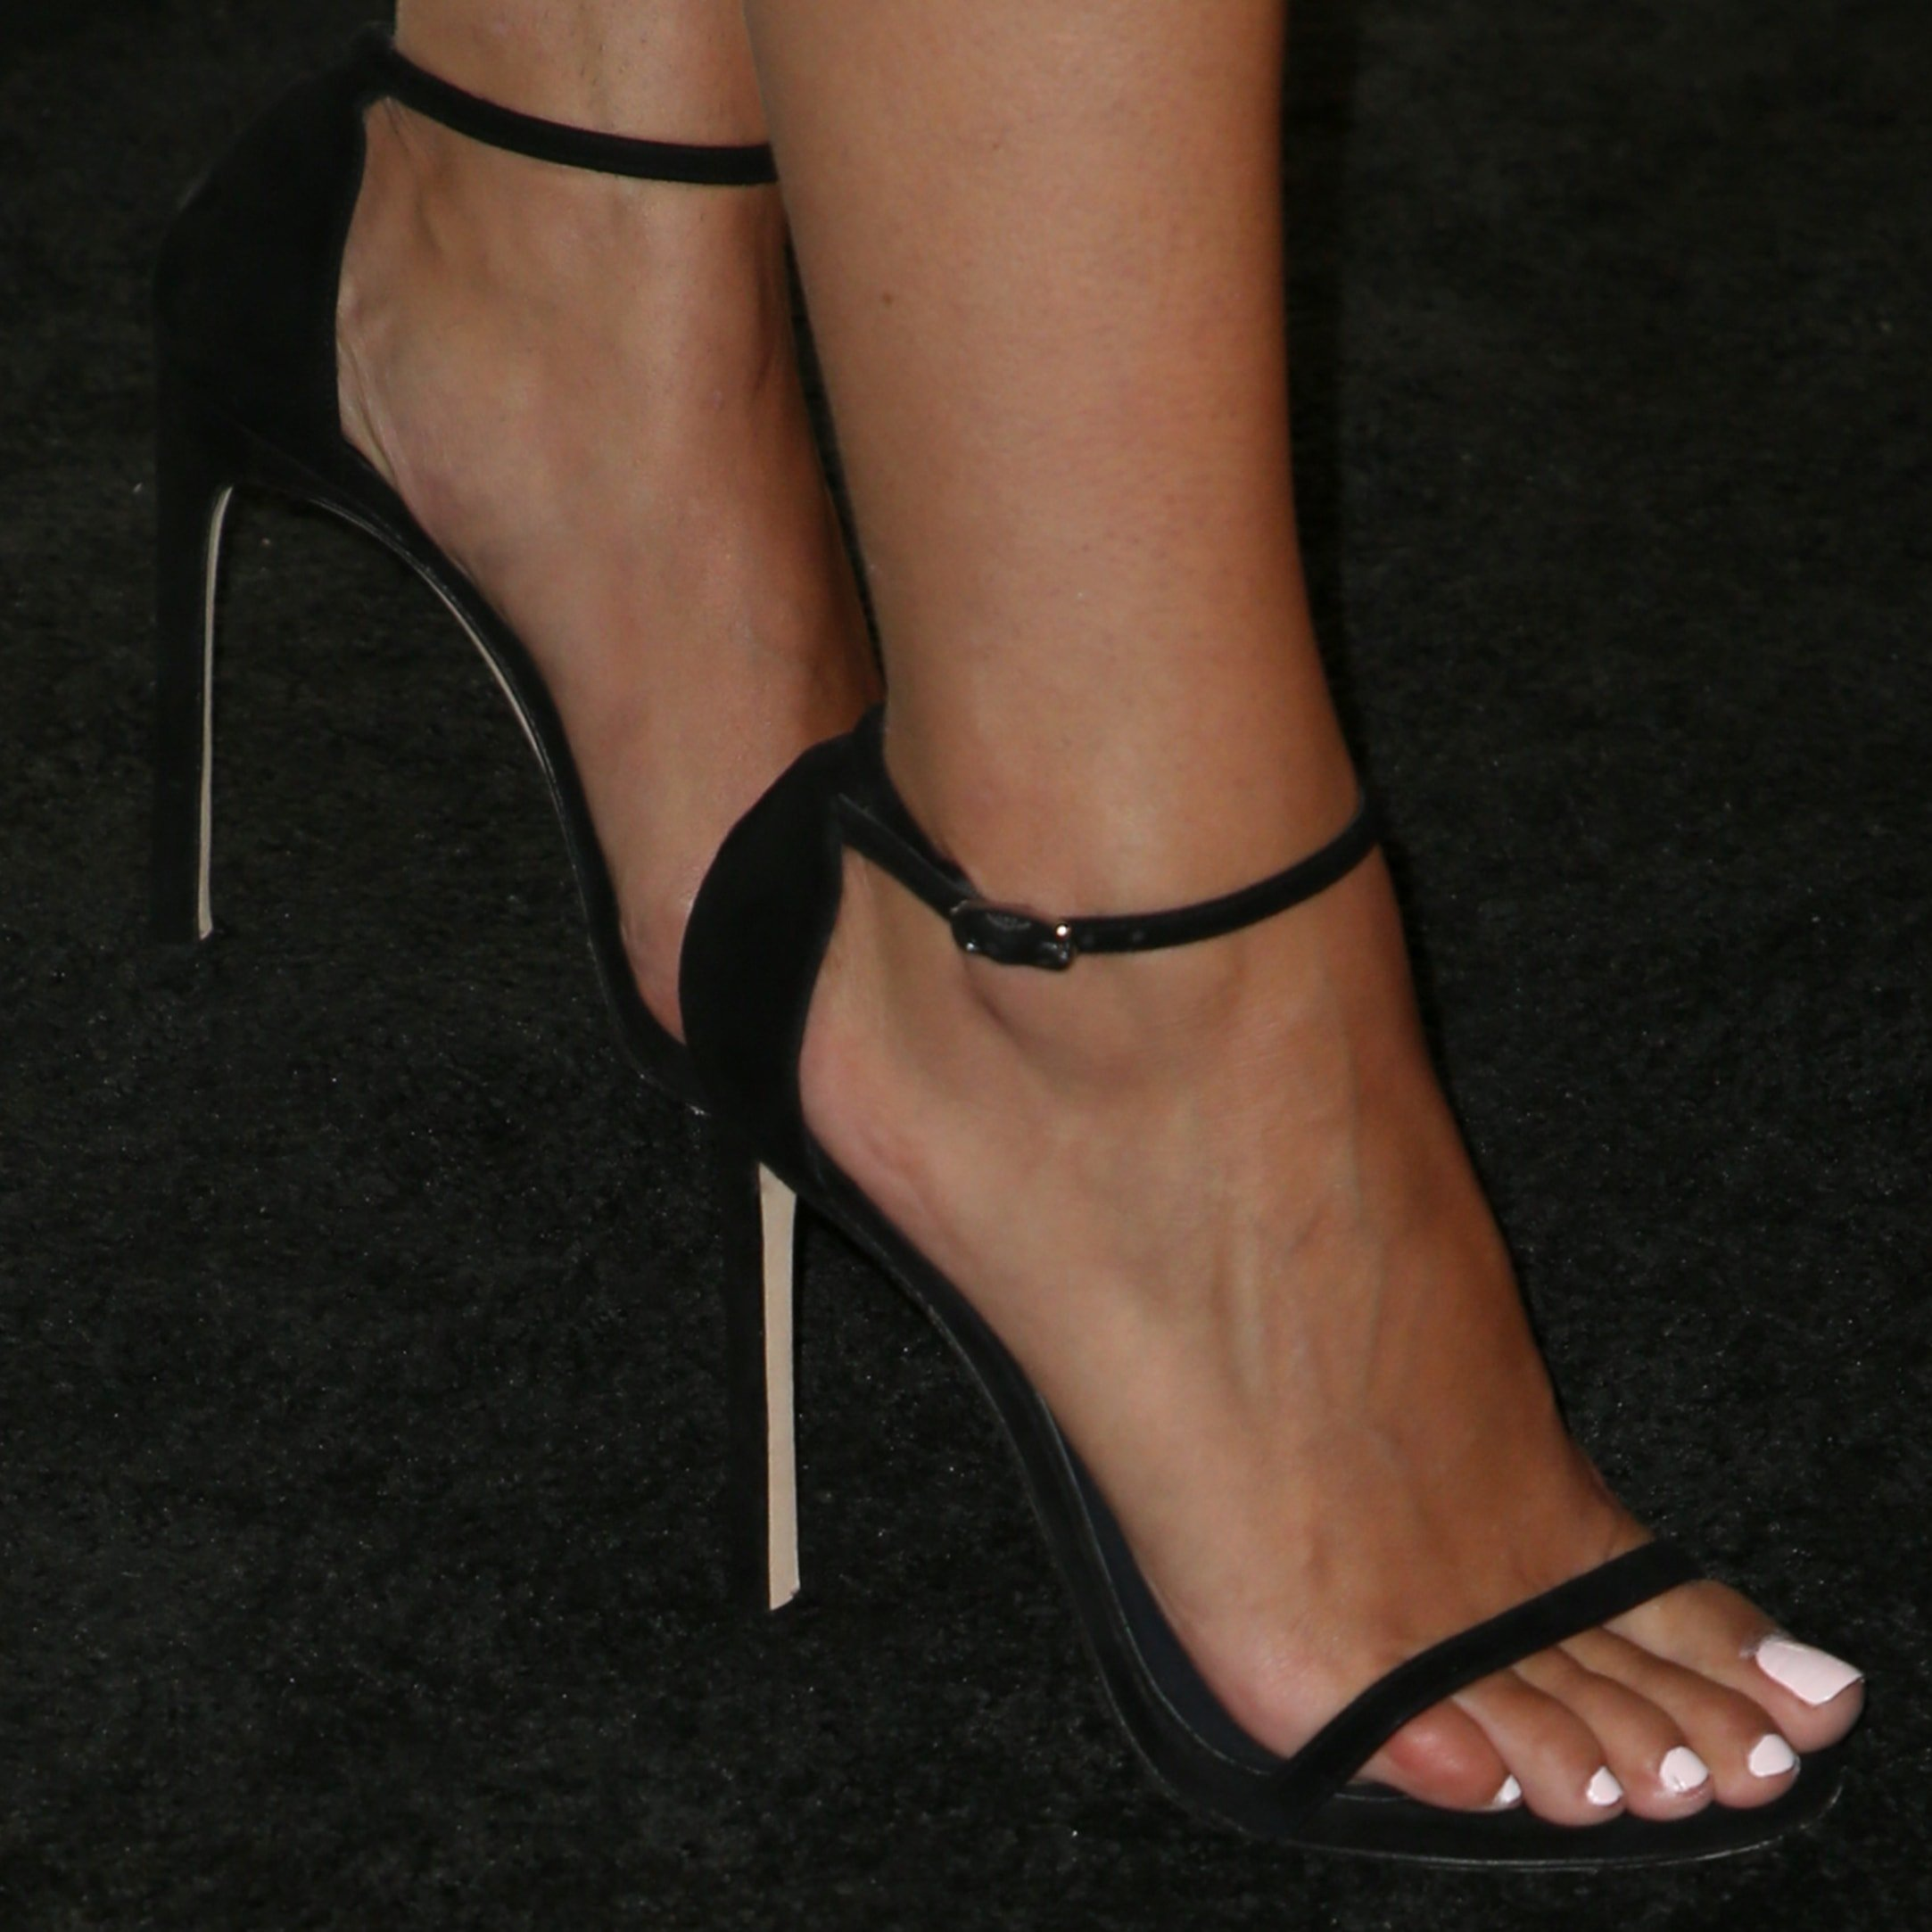 Aly Raisman's perfect feet in black ankle-strap sandals